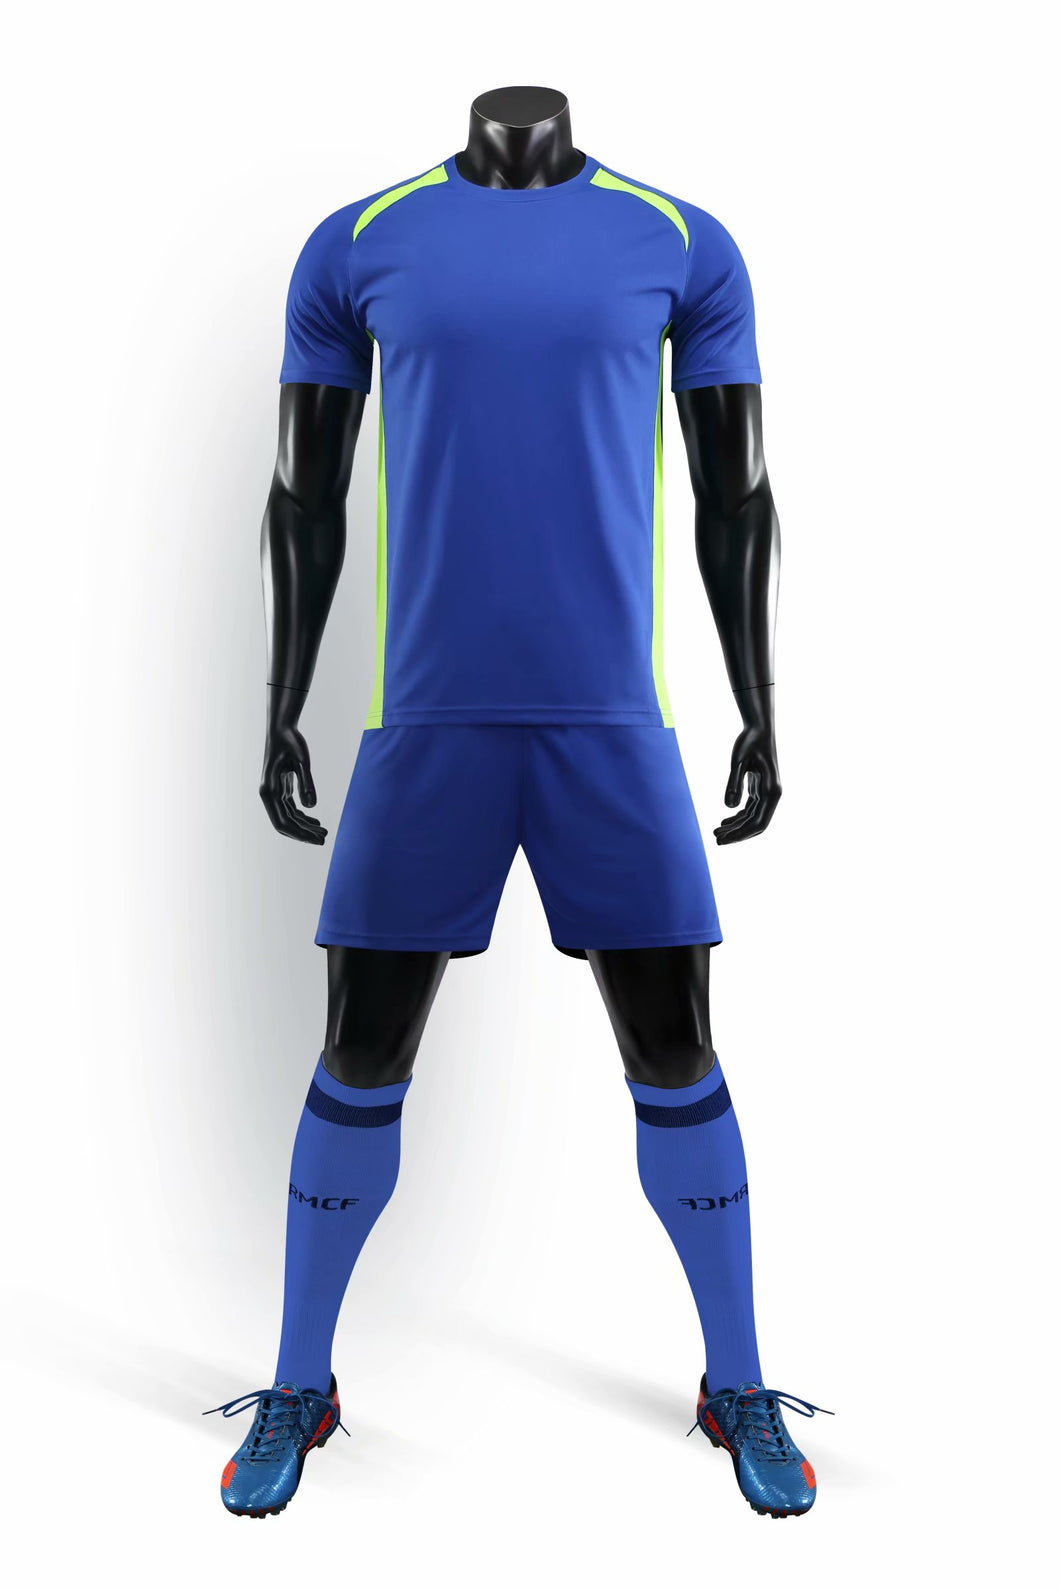 Full Football Kit - Blue with Neon Yellow Trim.